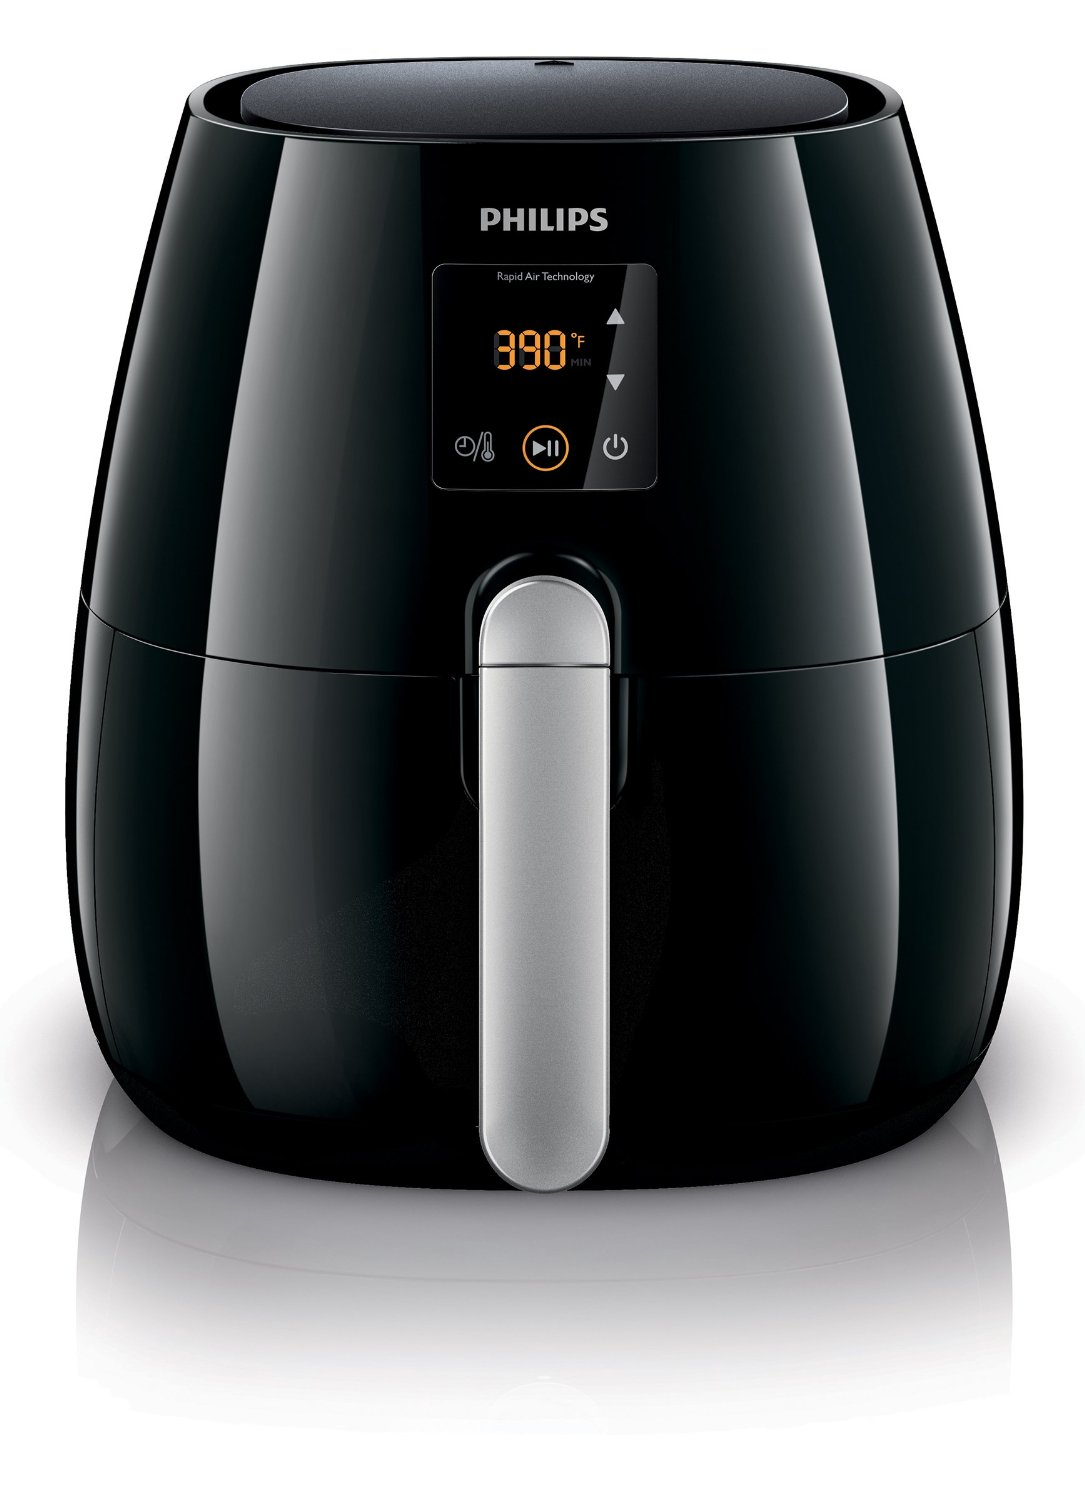 Philips air fryer review 2016 a buyer s guide